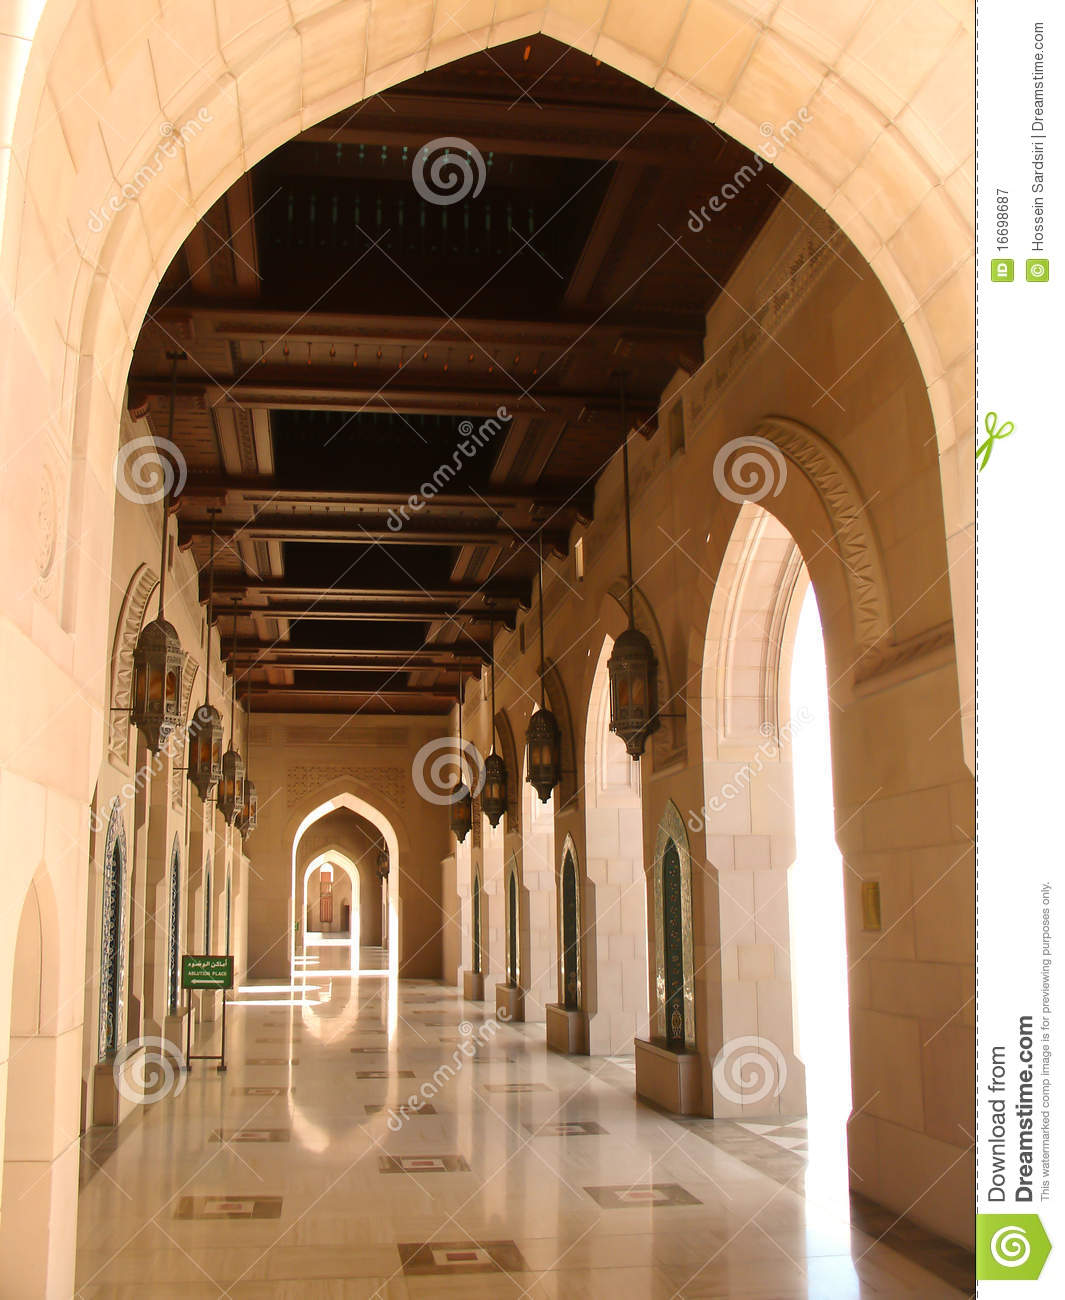 Sultan qaboos grand mosque exterior royalty free stock for Mosque exterior design